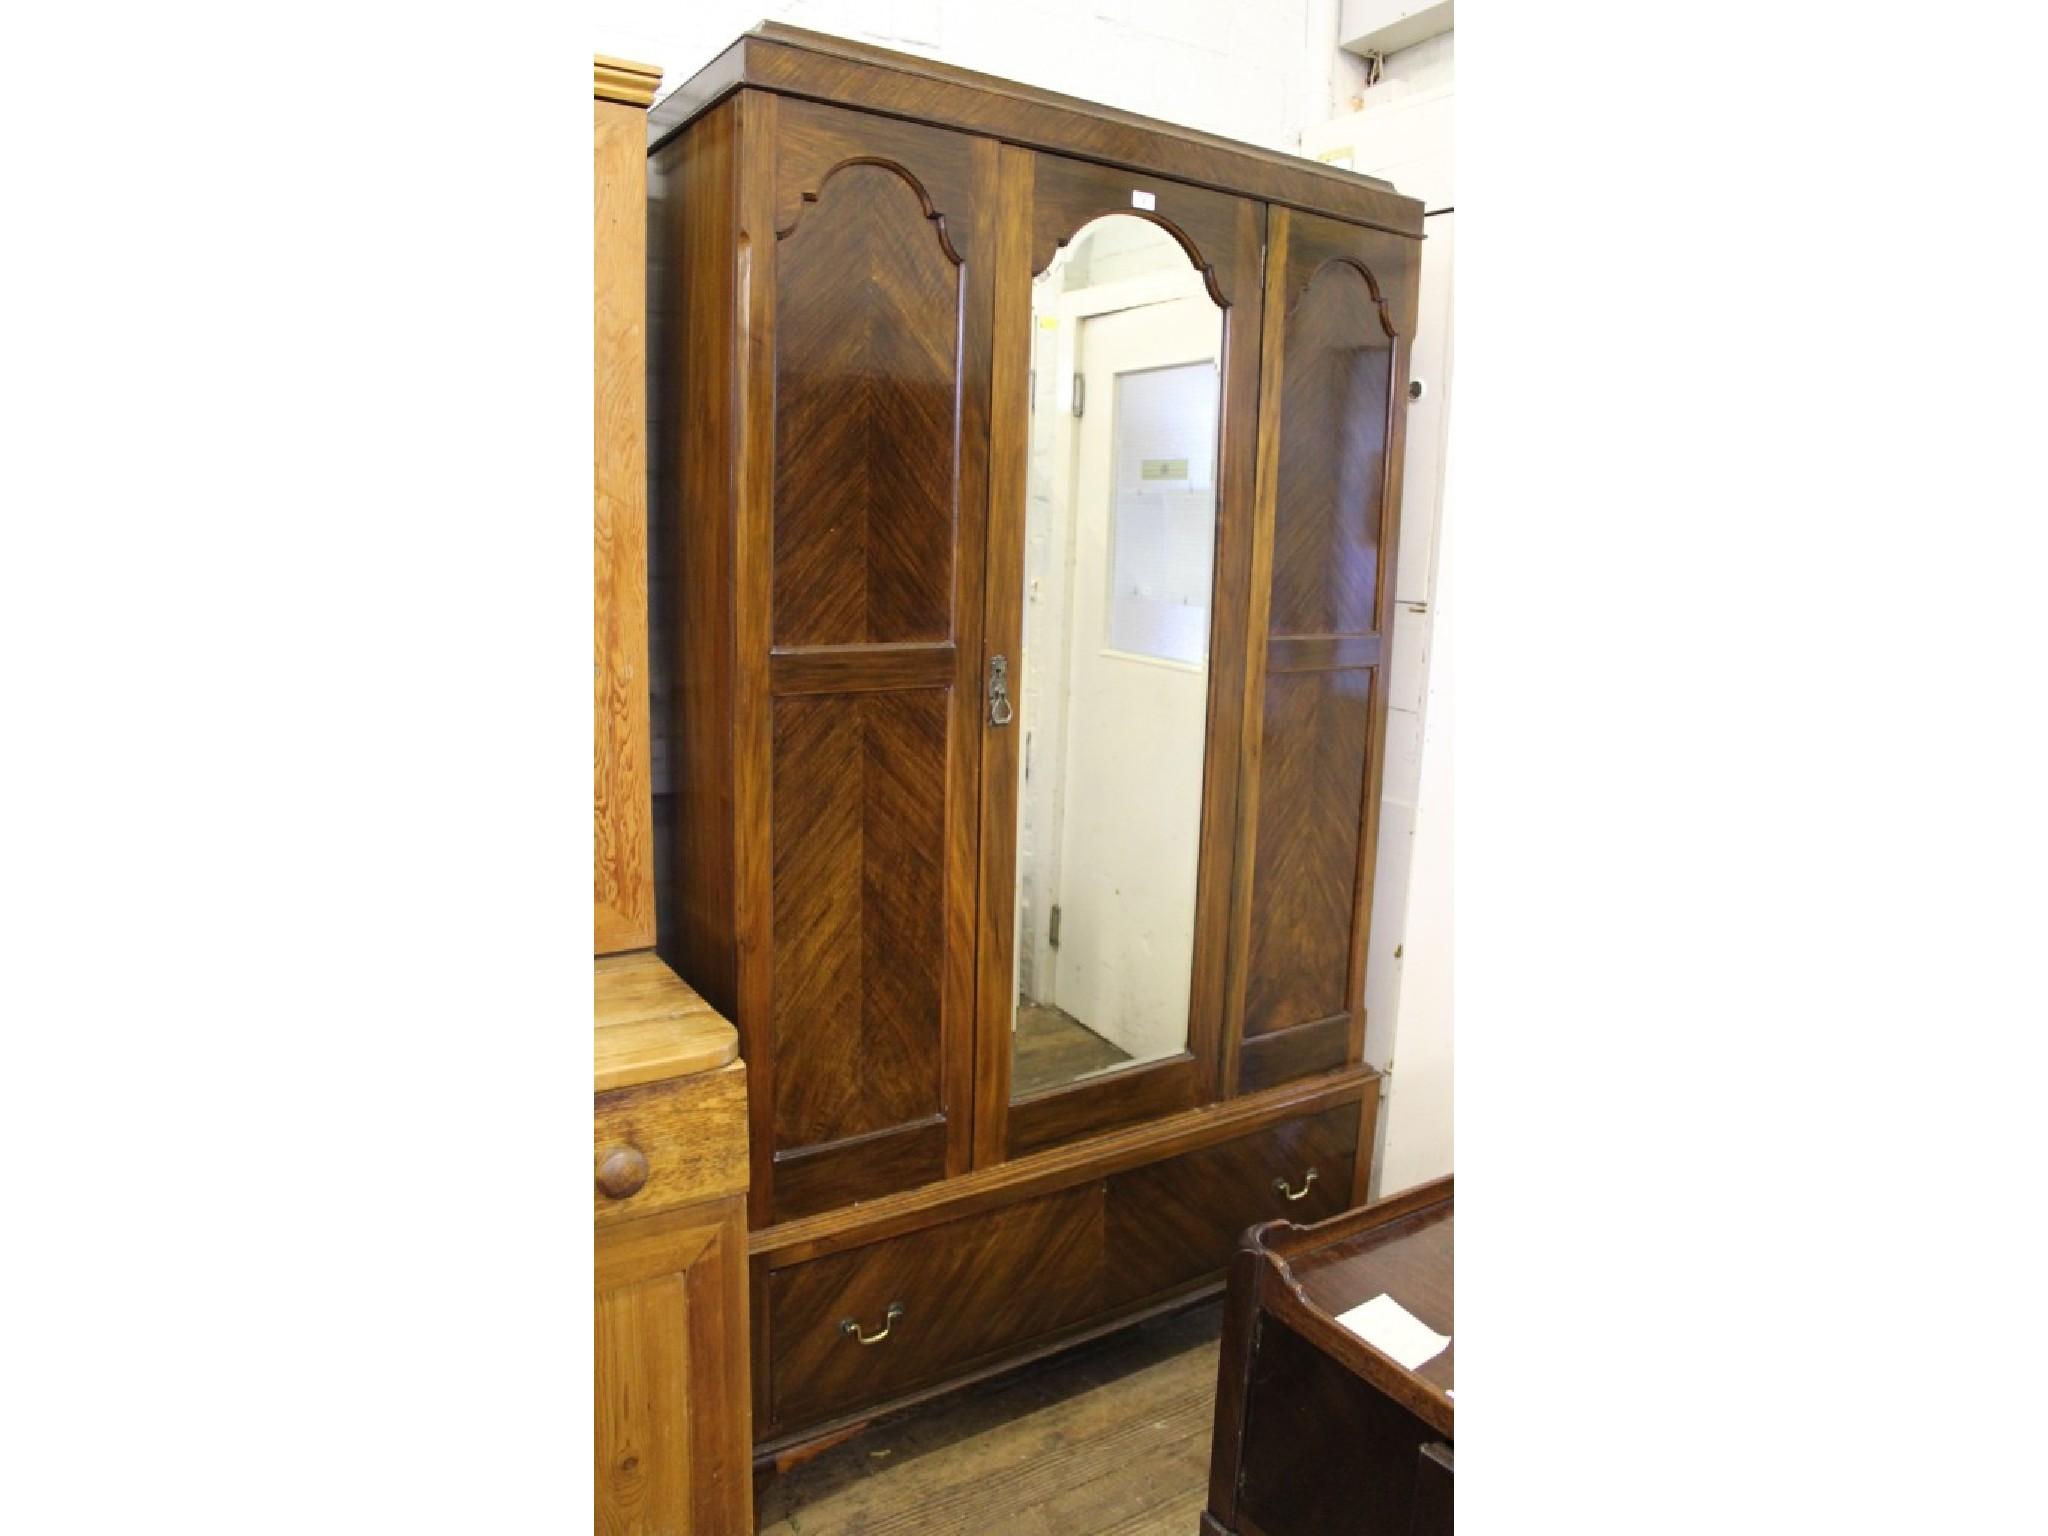 A stained Wood 1920's mirror door wardrobe, with drawer below and cabriole legs